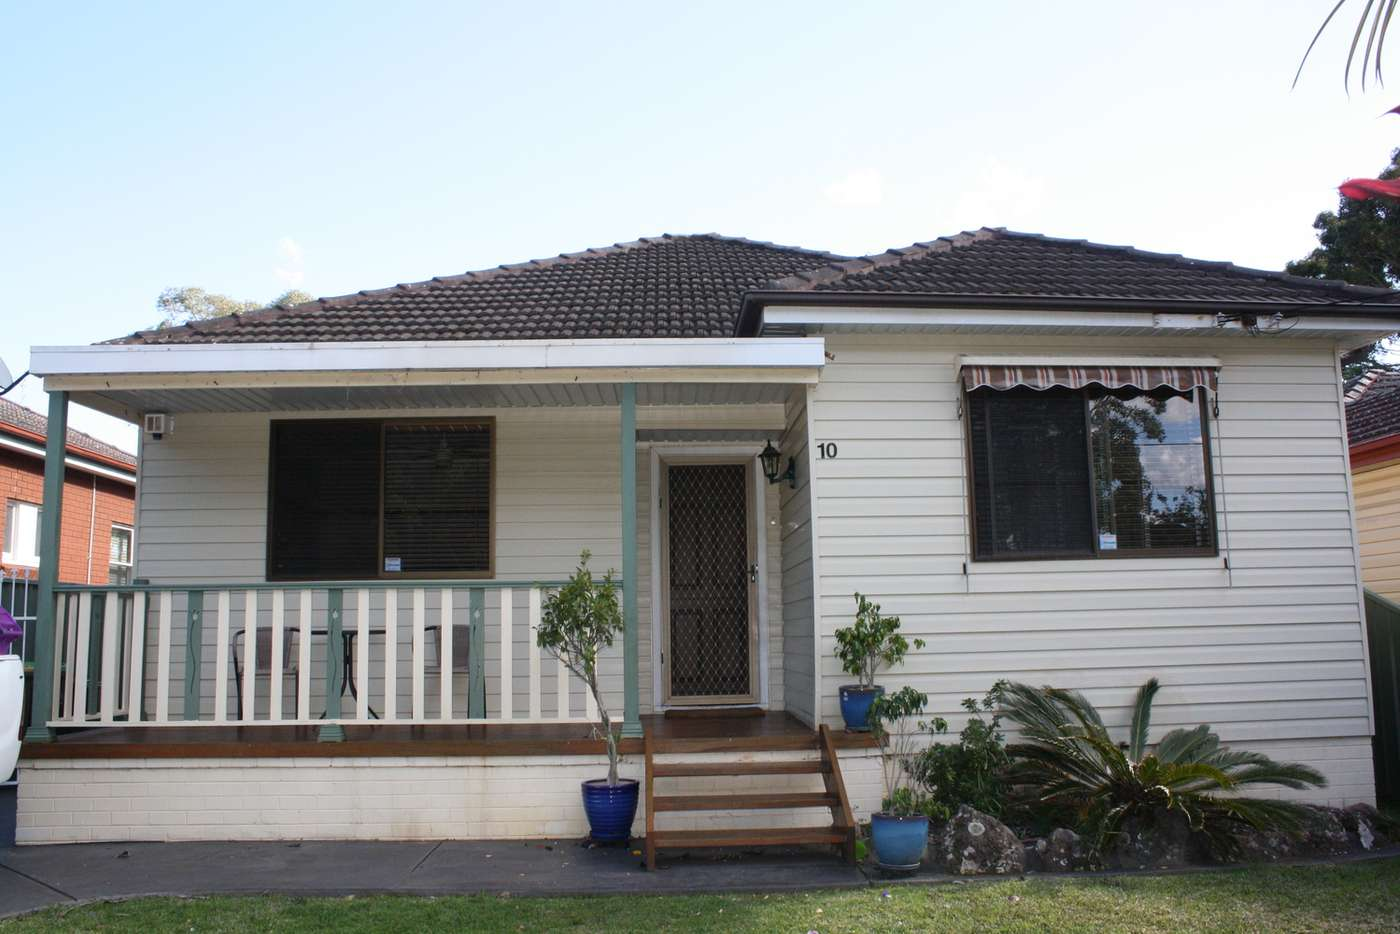 Main view of Homely house listing, 10 Rivenoak Avenue, Padstow NSW 2211